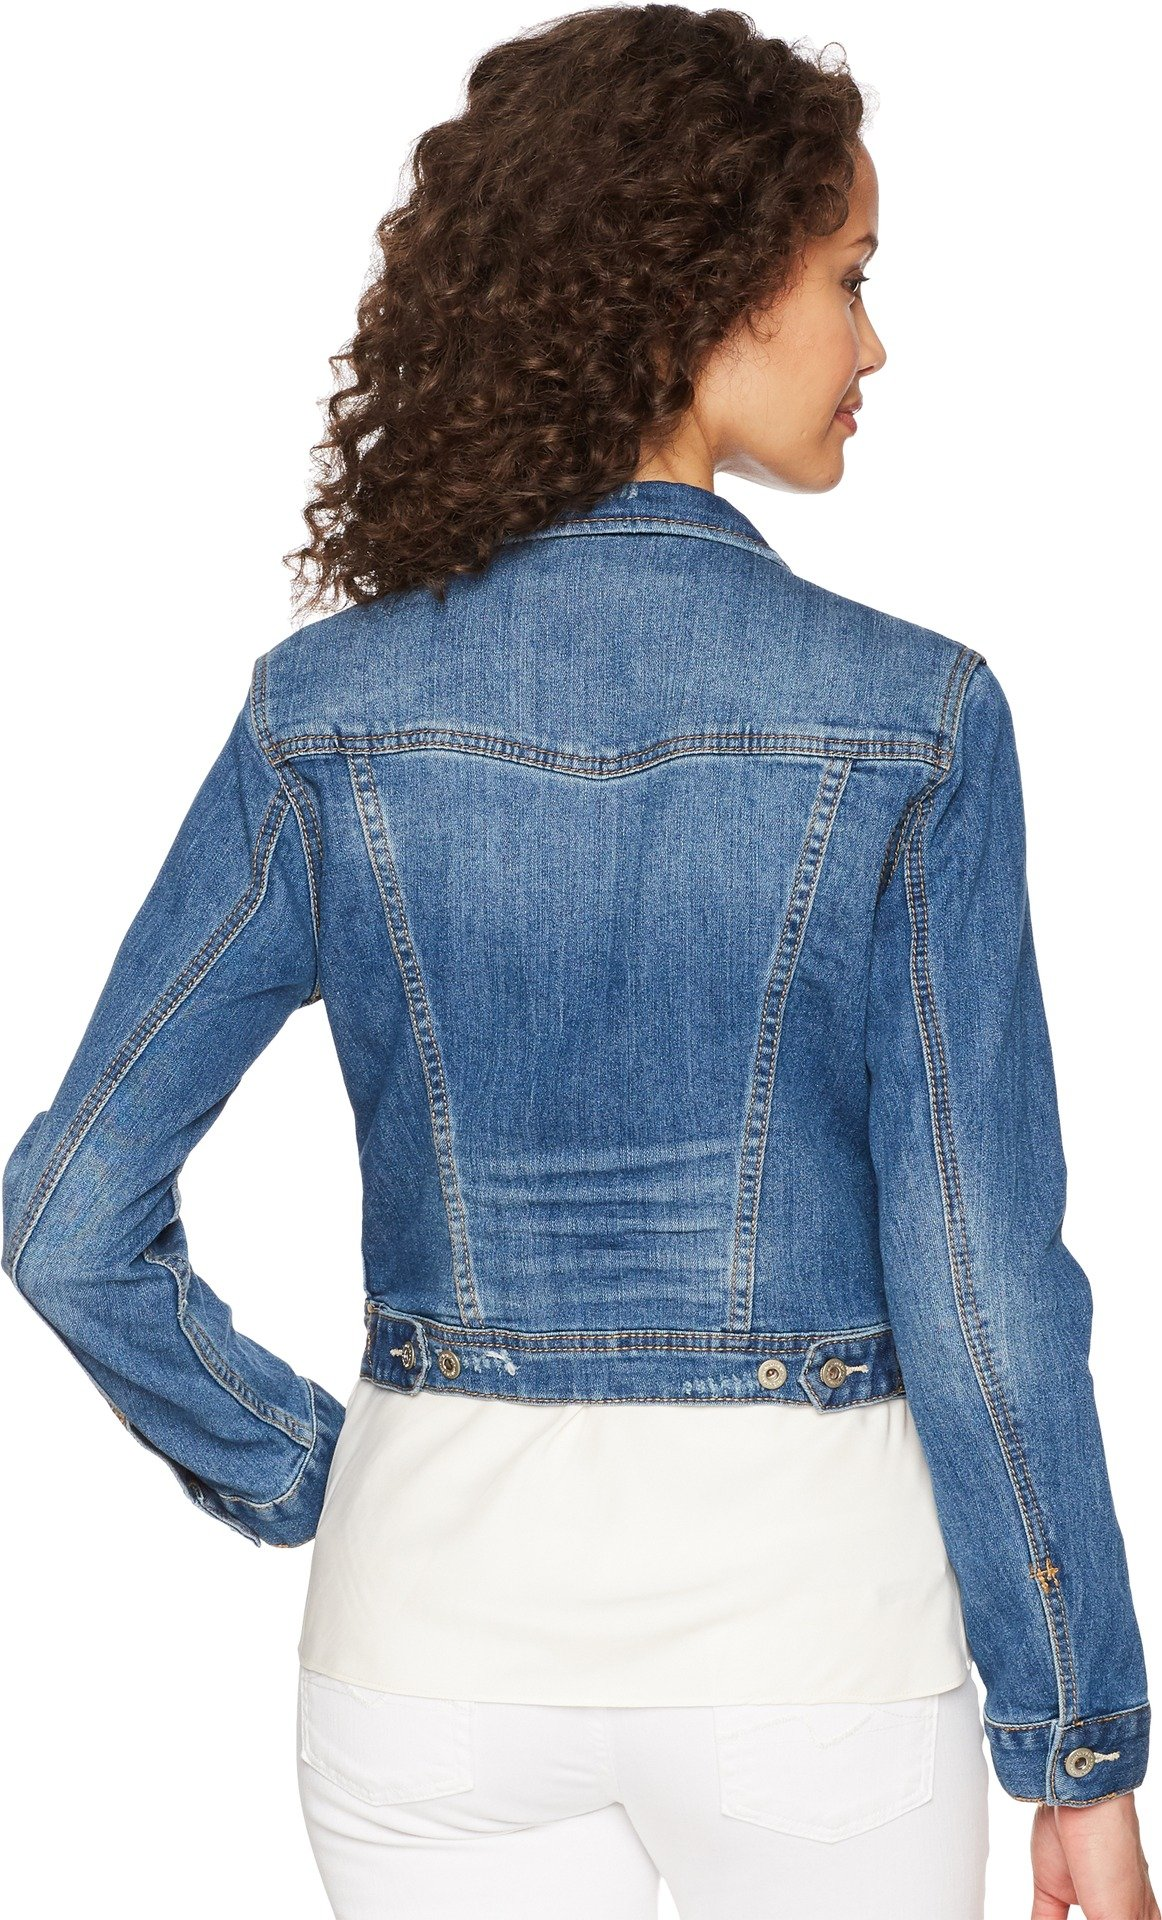 UNIONBAY Women's Lucas Denim Jacket, Cove, Medium by UNIONBAY (Image #3)